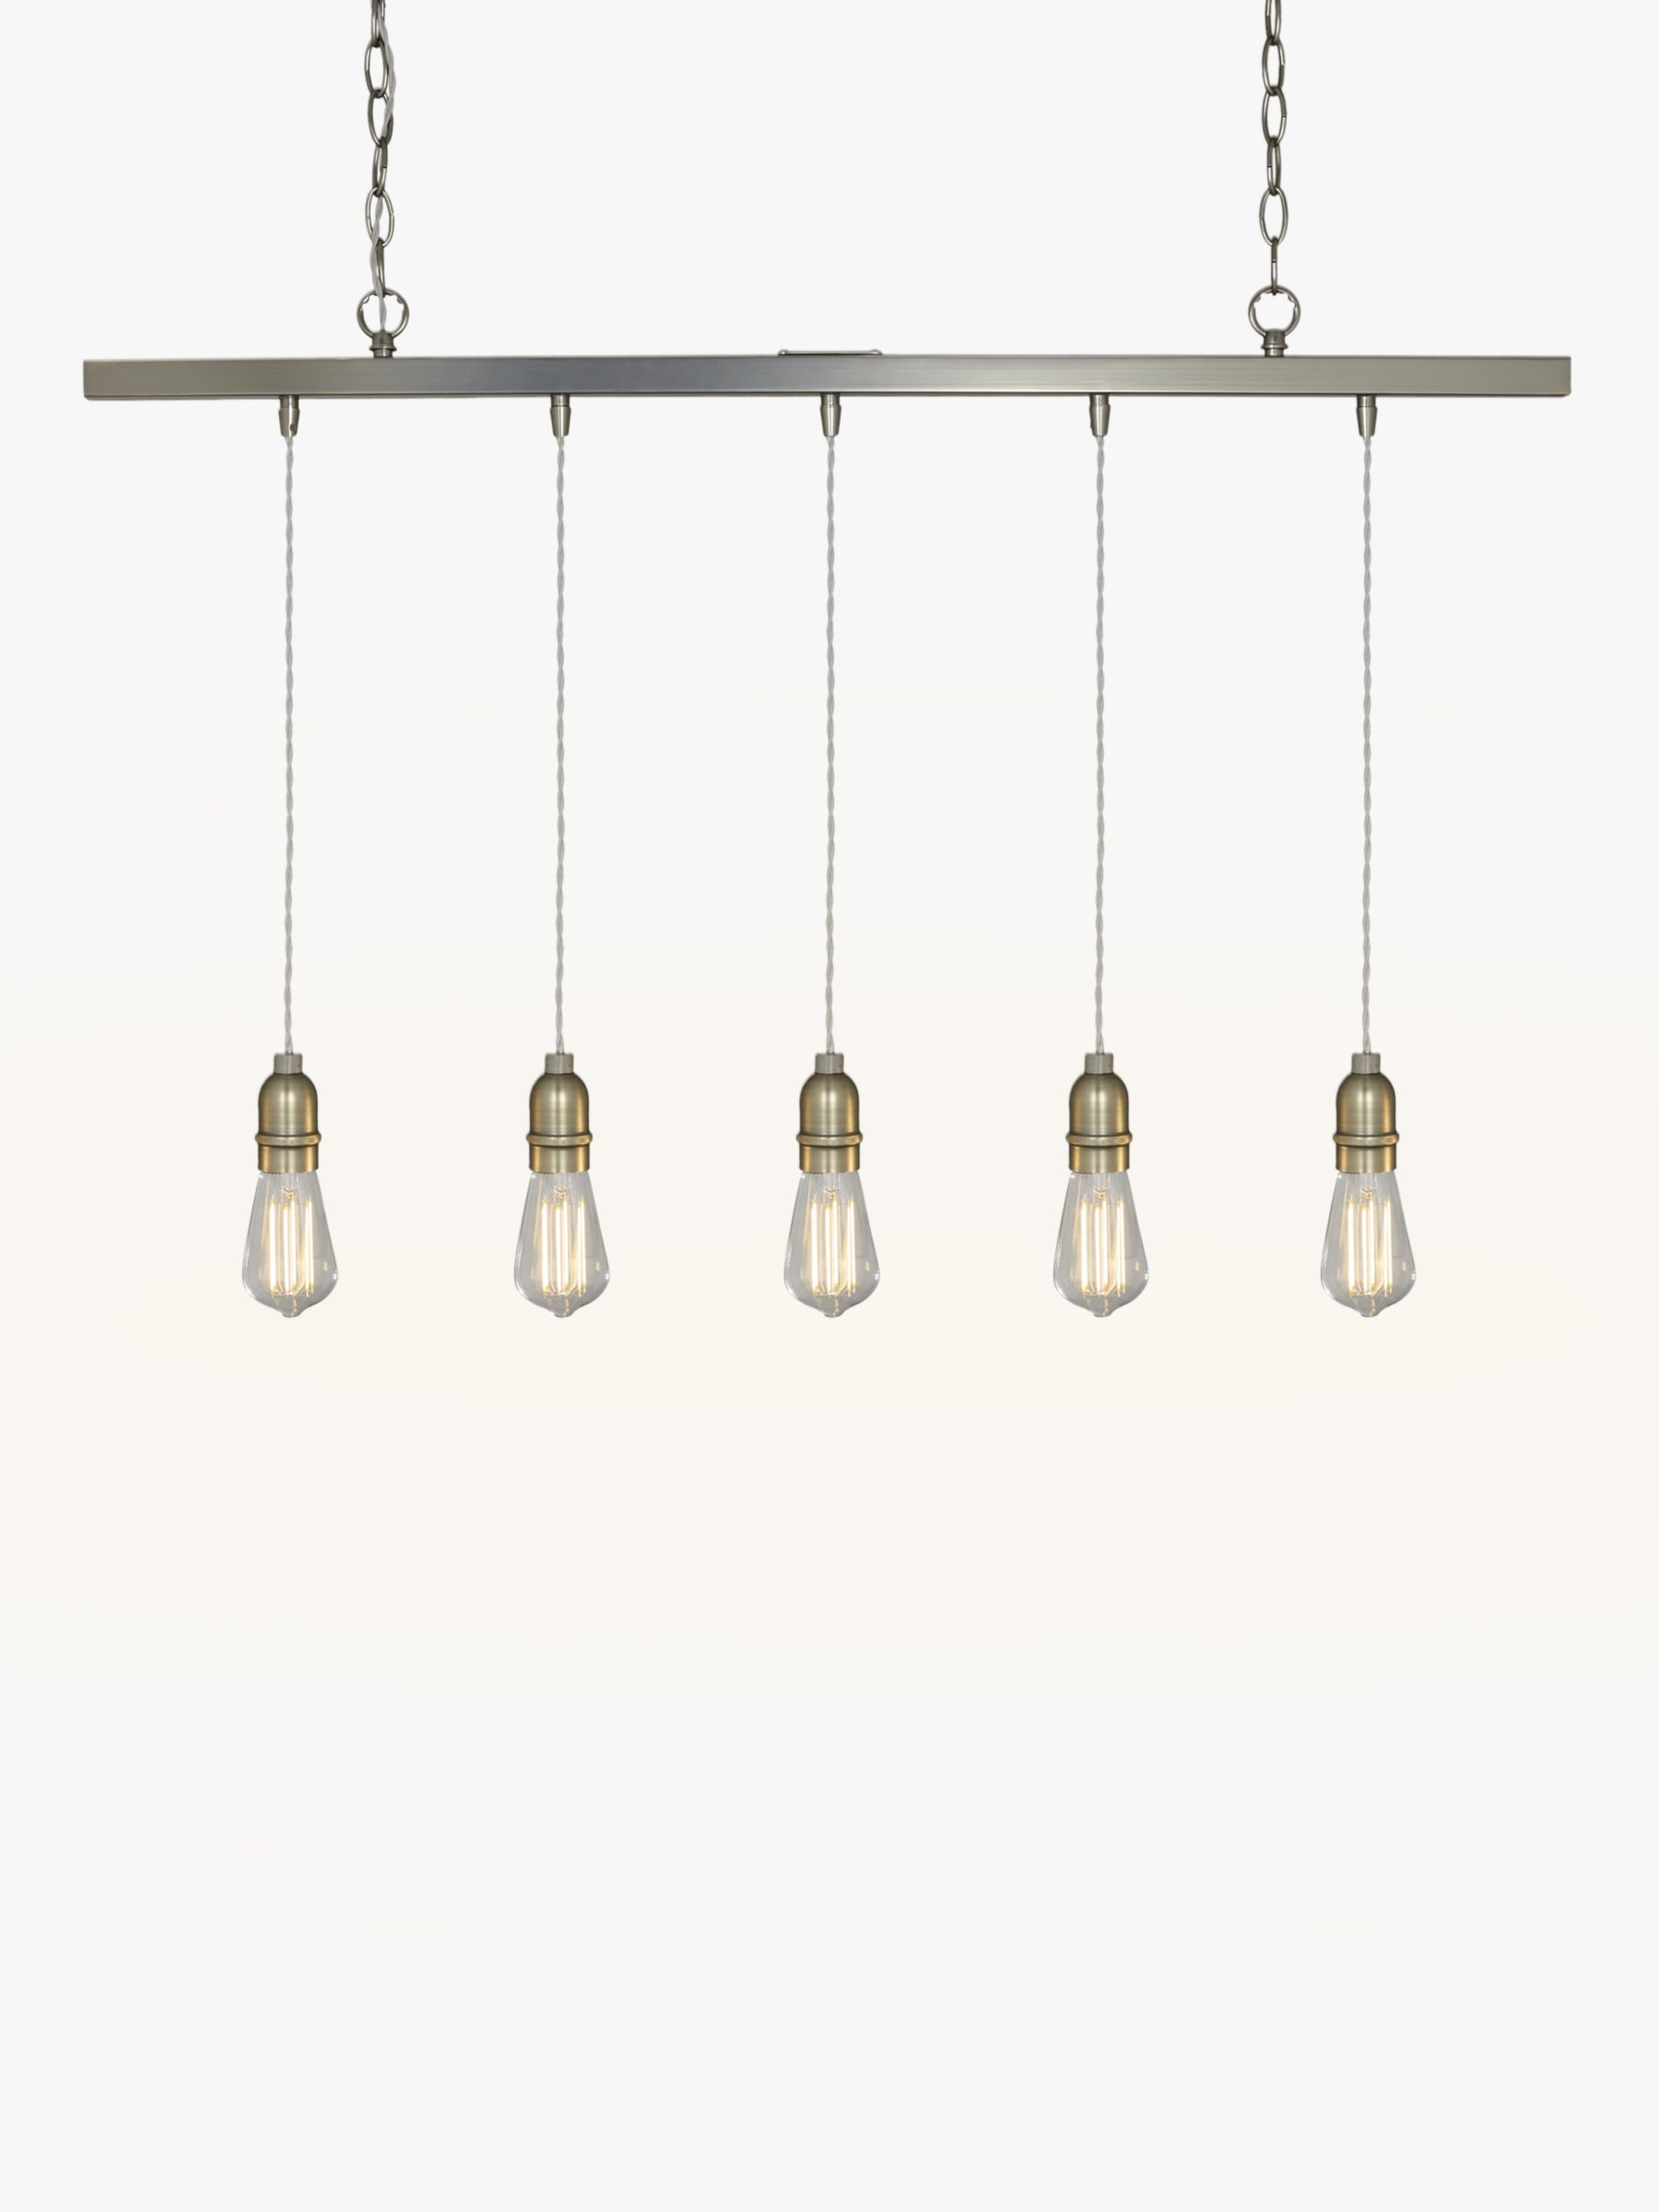 Pendant Bar Lighting John Lewis Bistro Bar Pendant Ceiling Light 5 Light